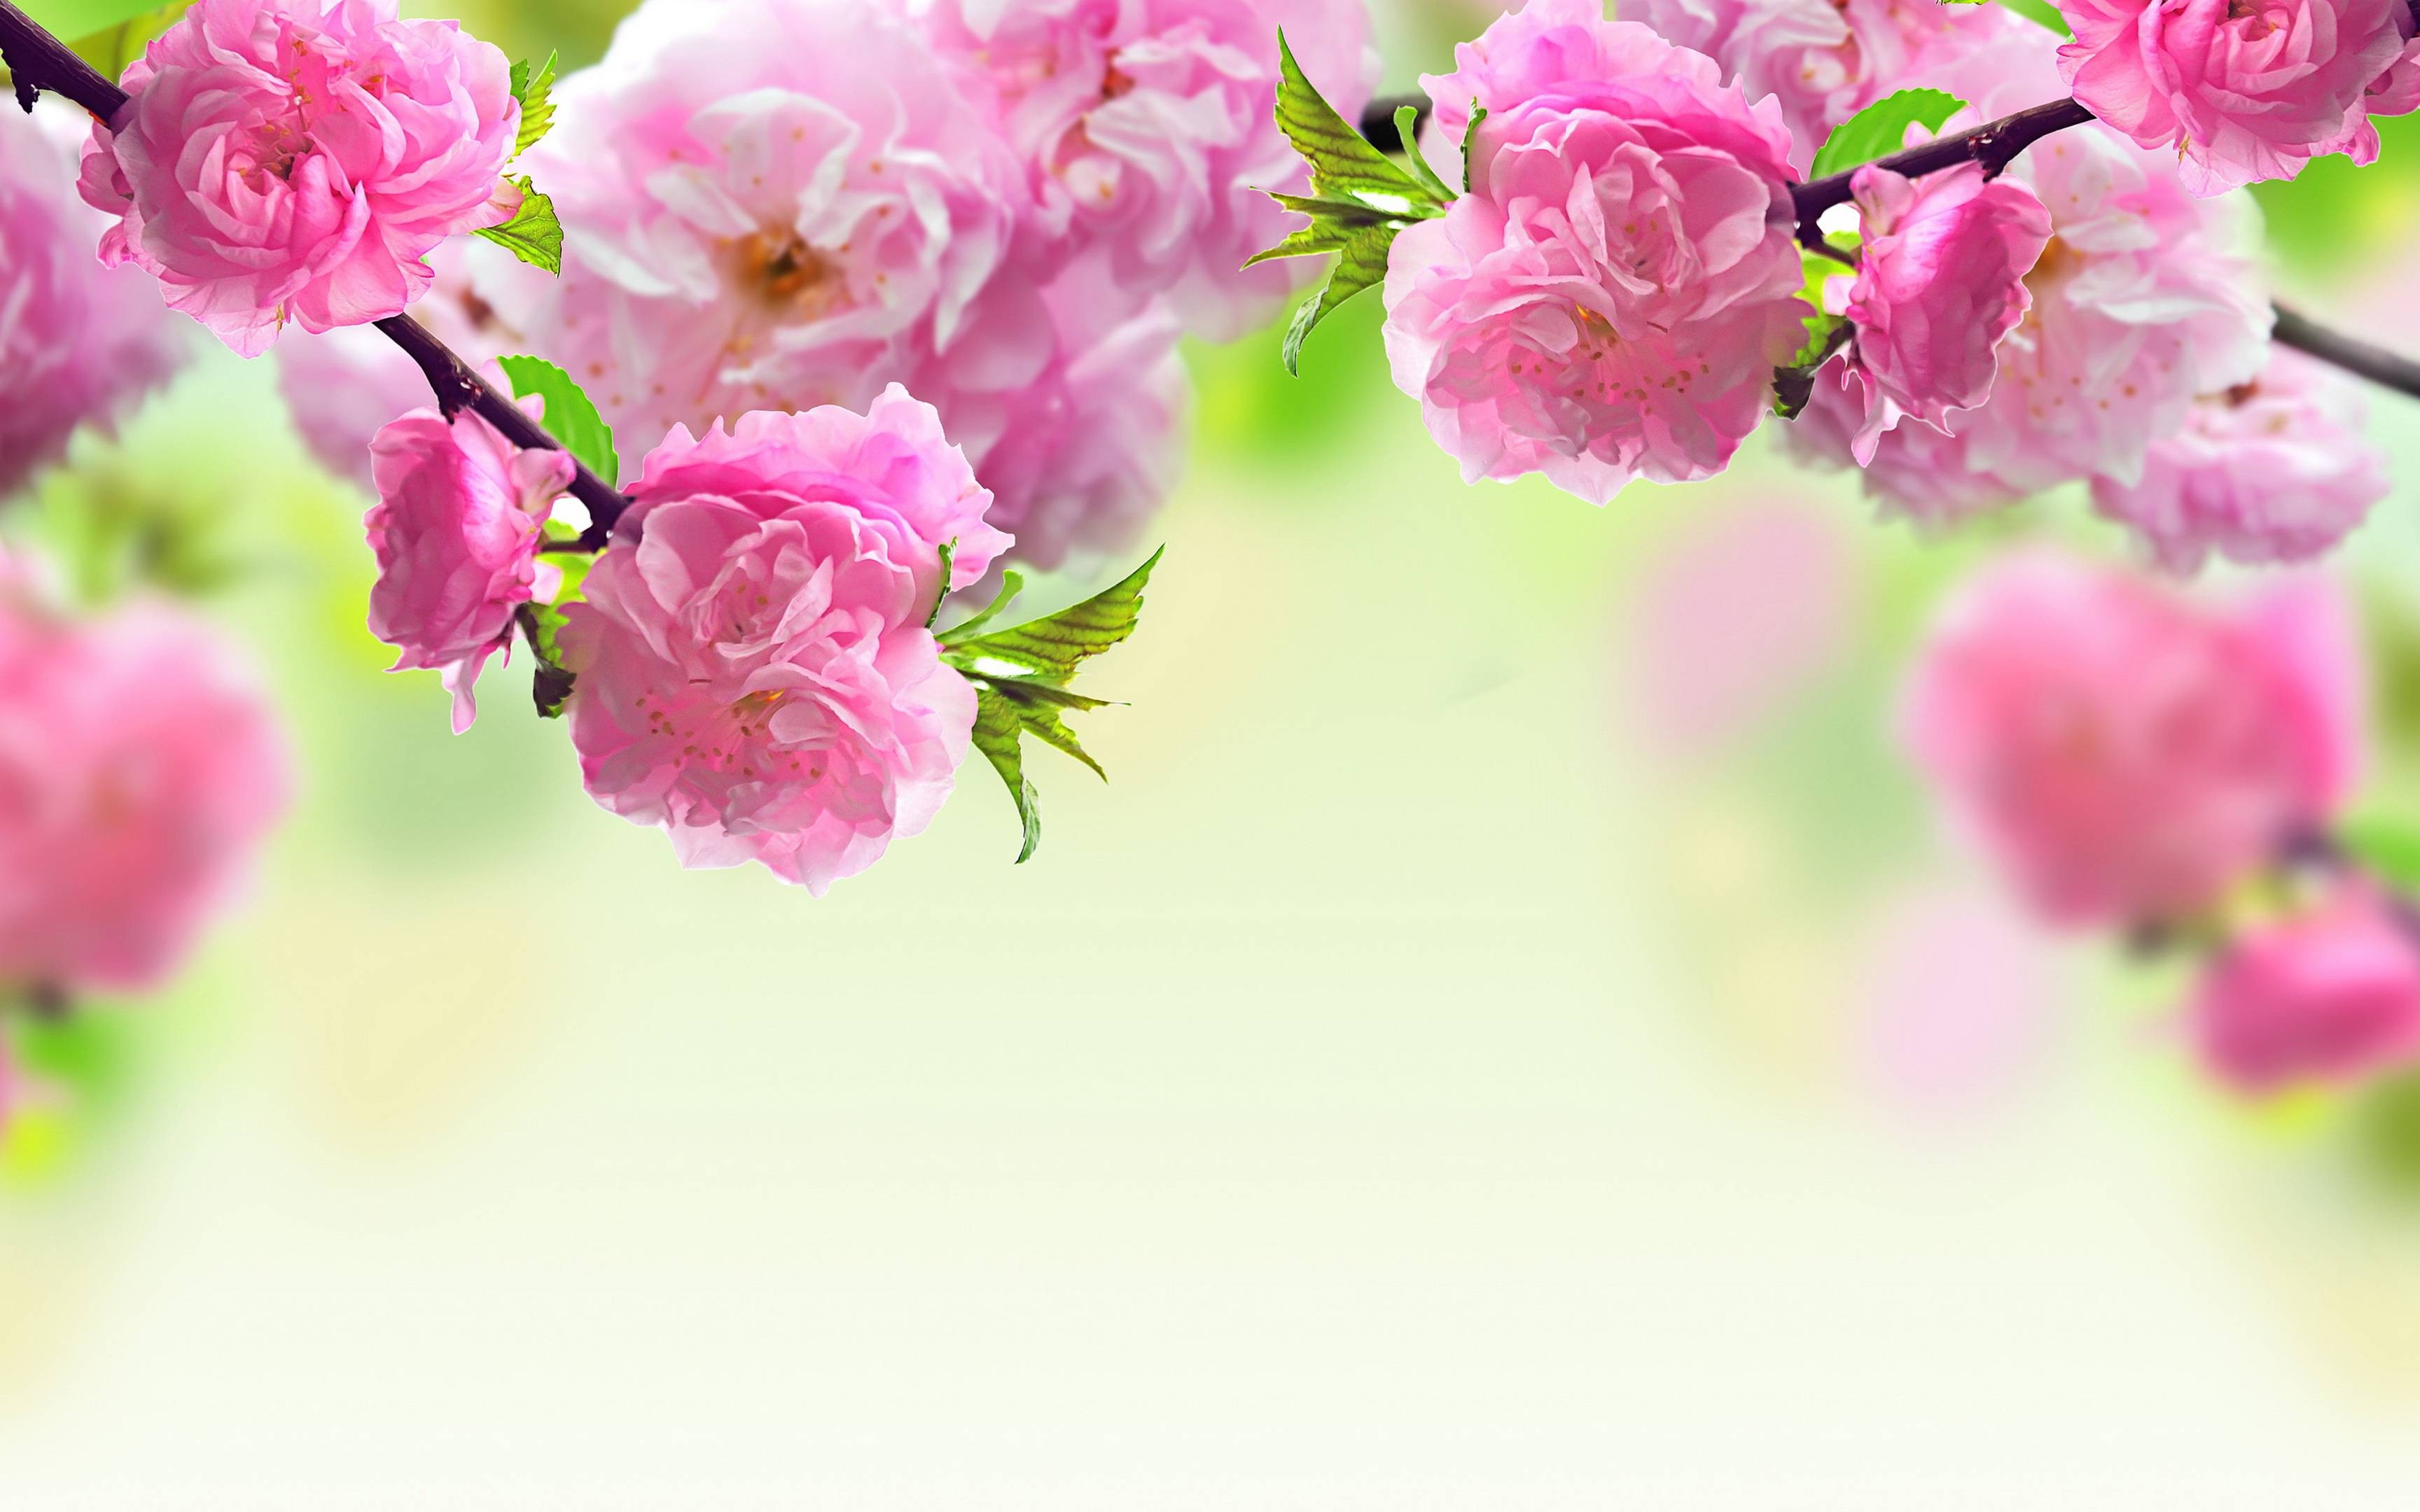 flower background tumblr ·① download free stunning wallpapers for